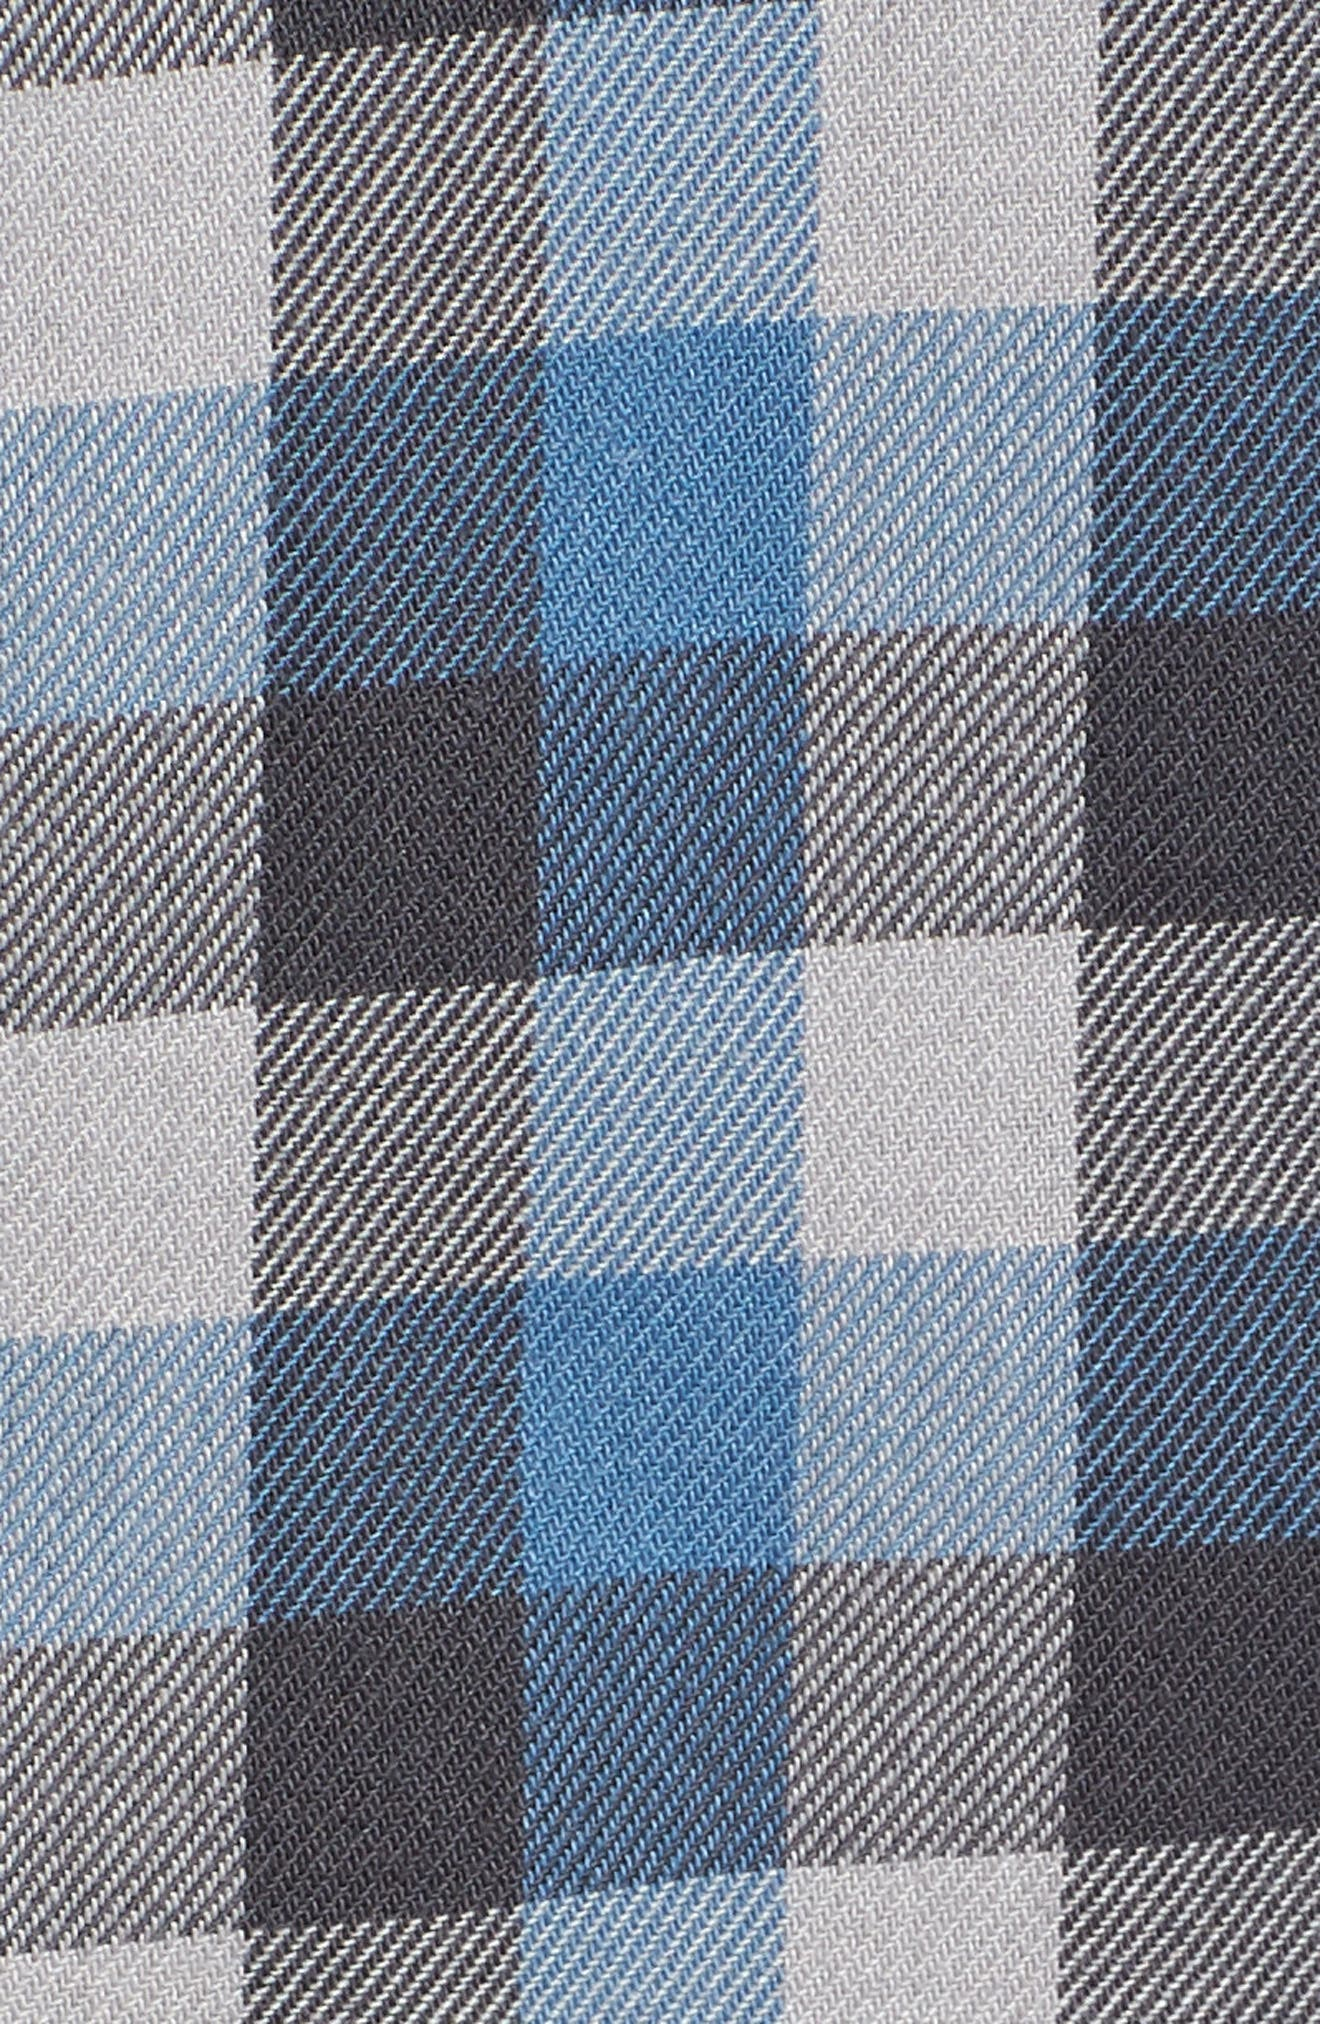 Alameda II Plaid Flannel Shirt,                             Alternate thumbnail 5, color,                             Asphalt/ Copen Blue